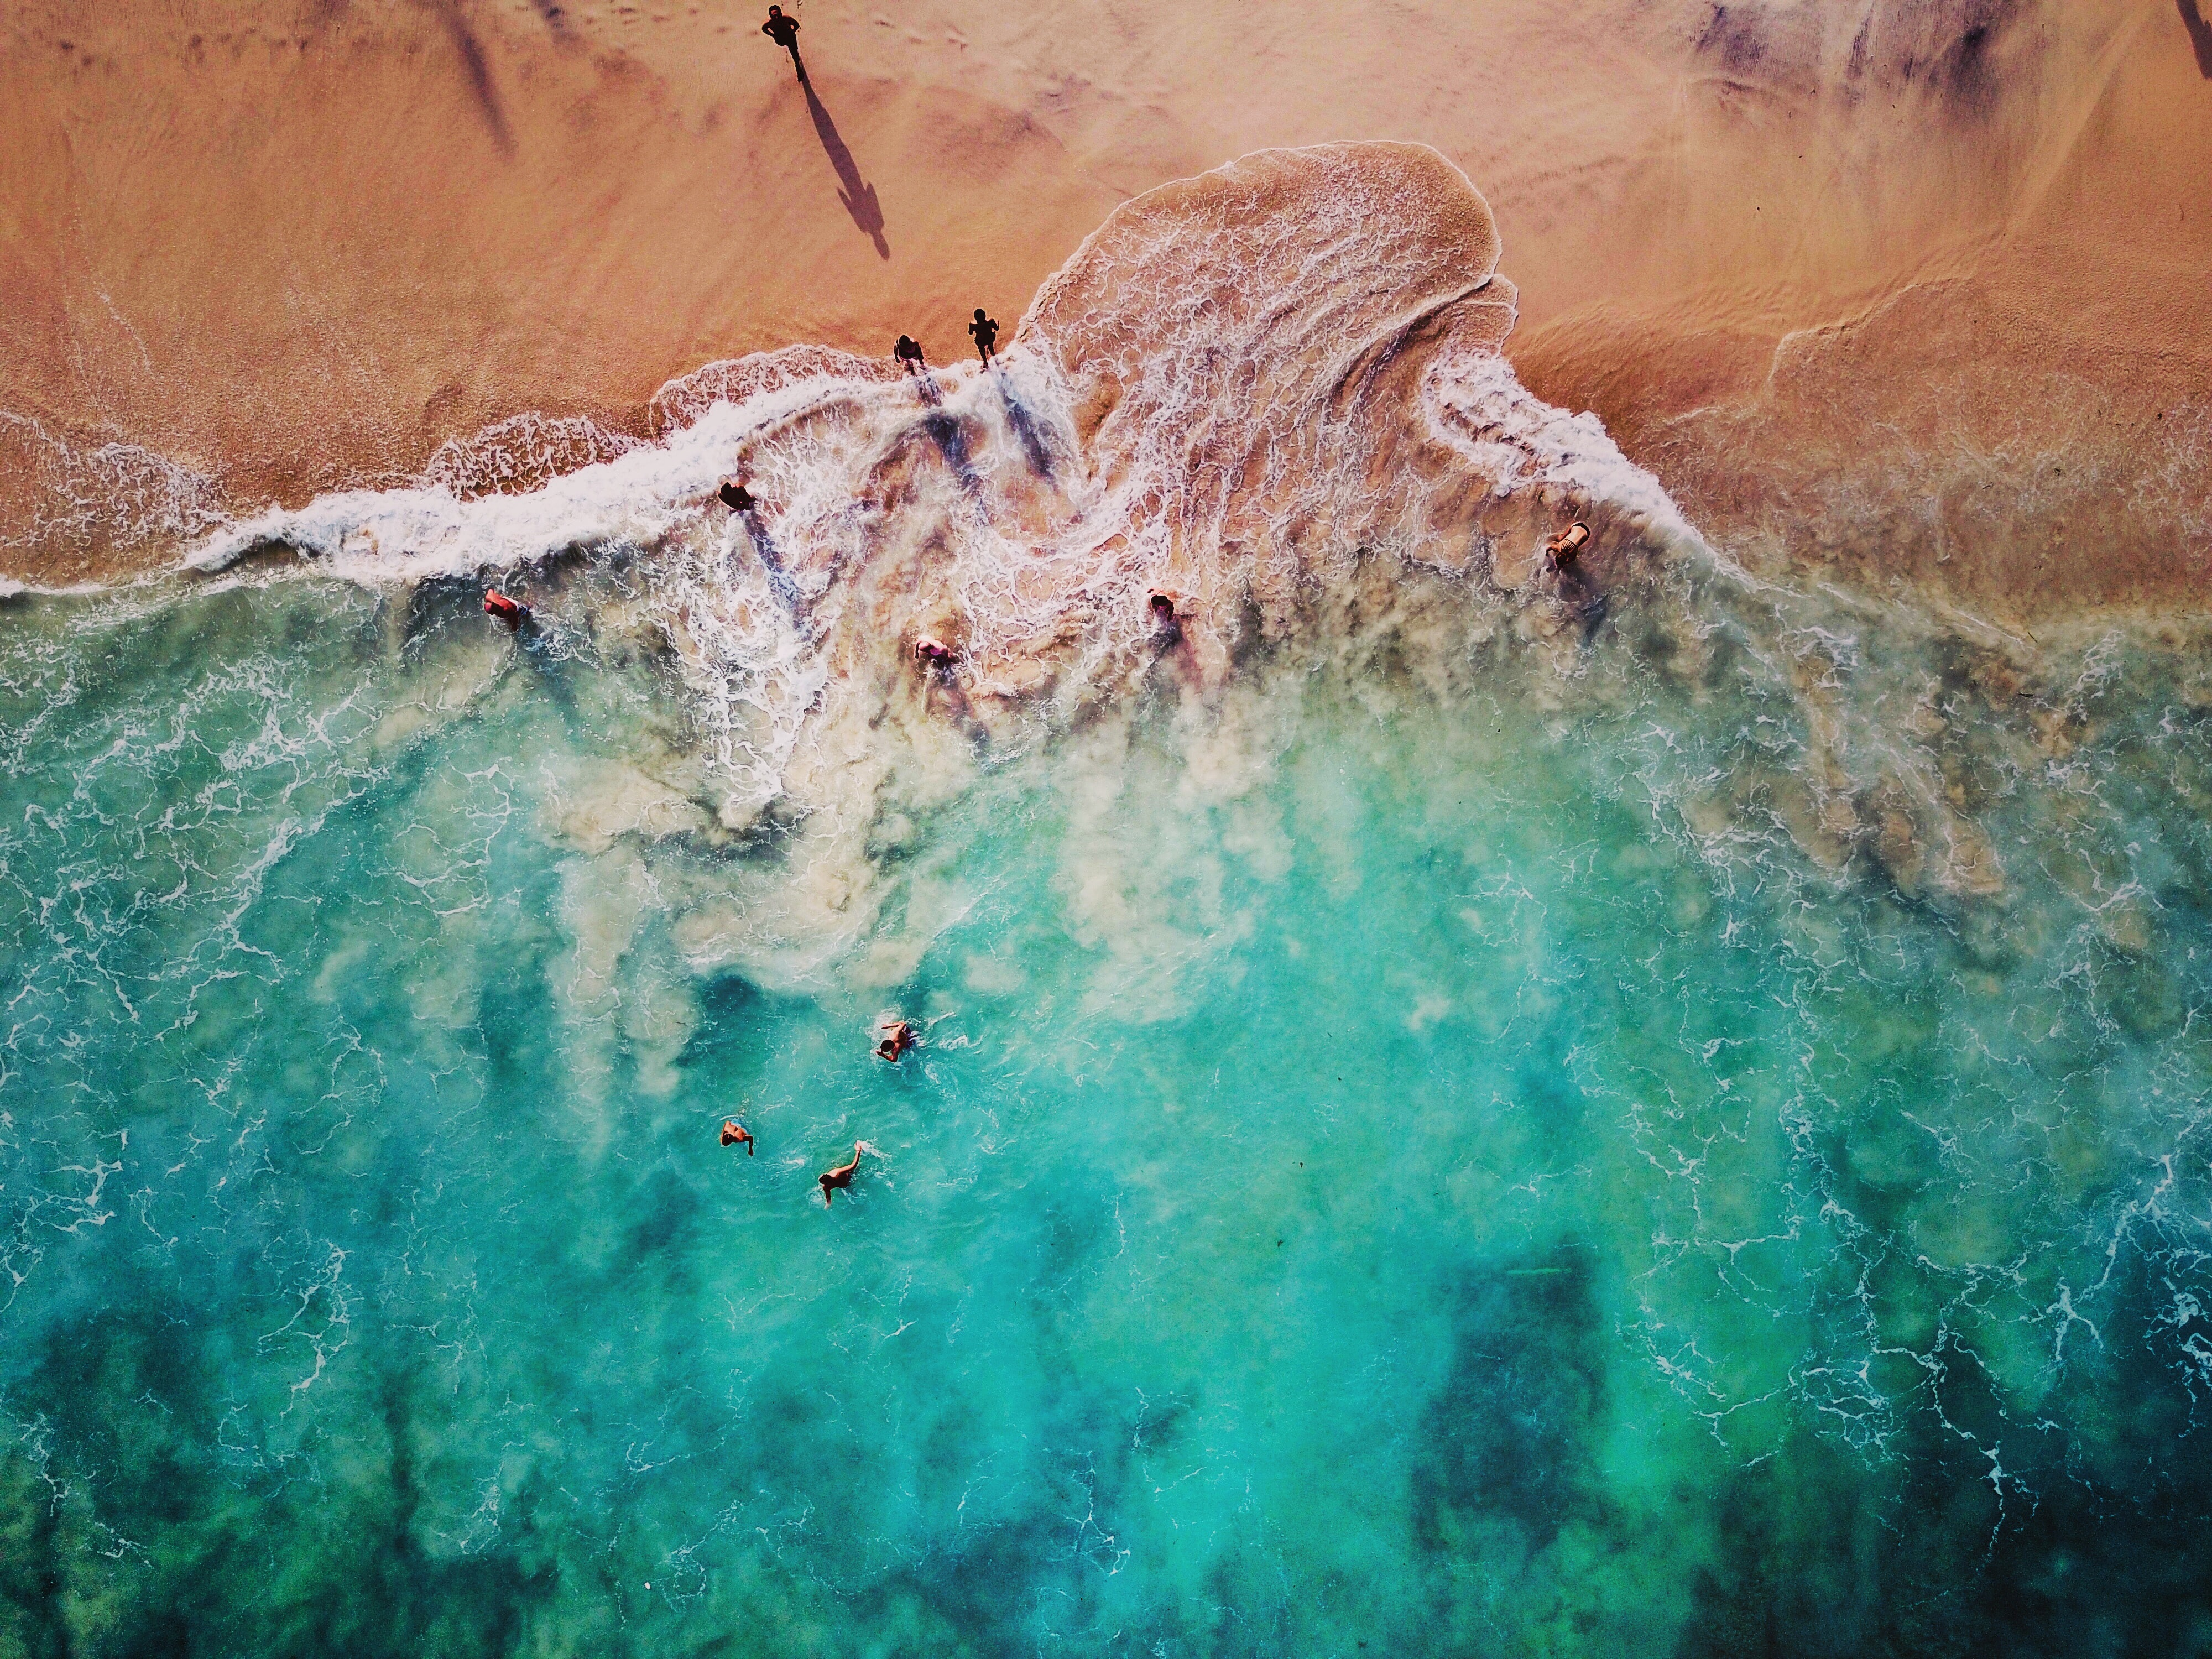 High-angle drone photo taken on the white sand beach in Bali